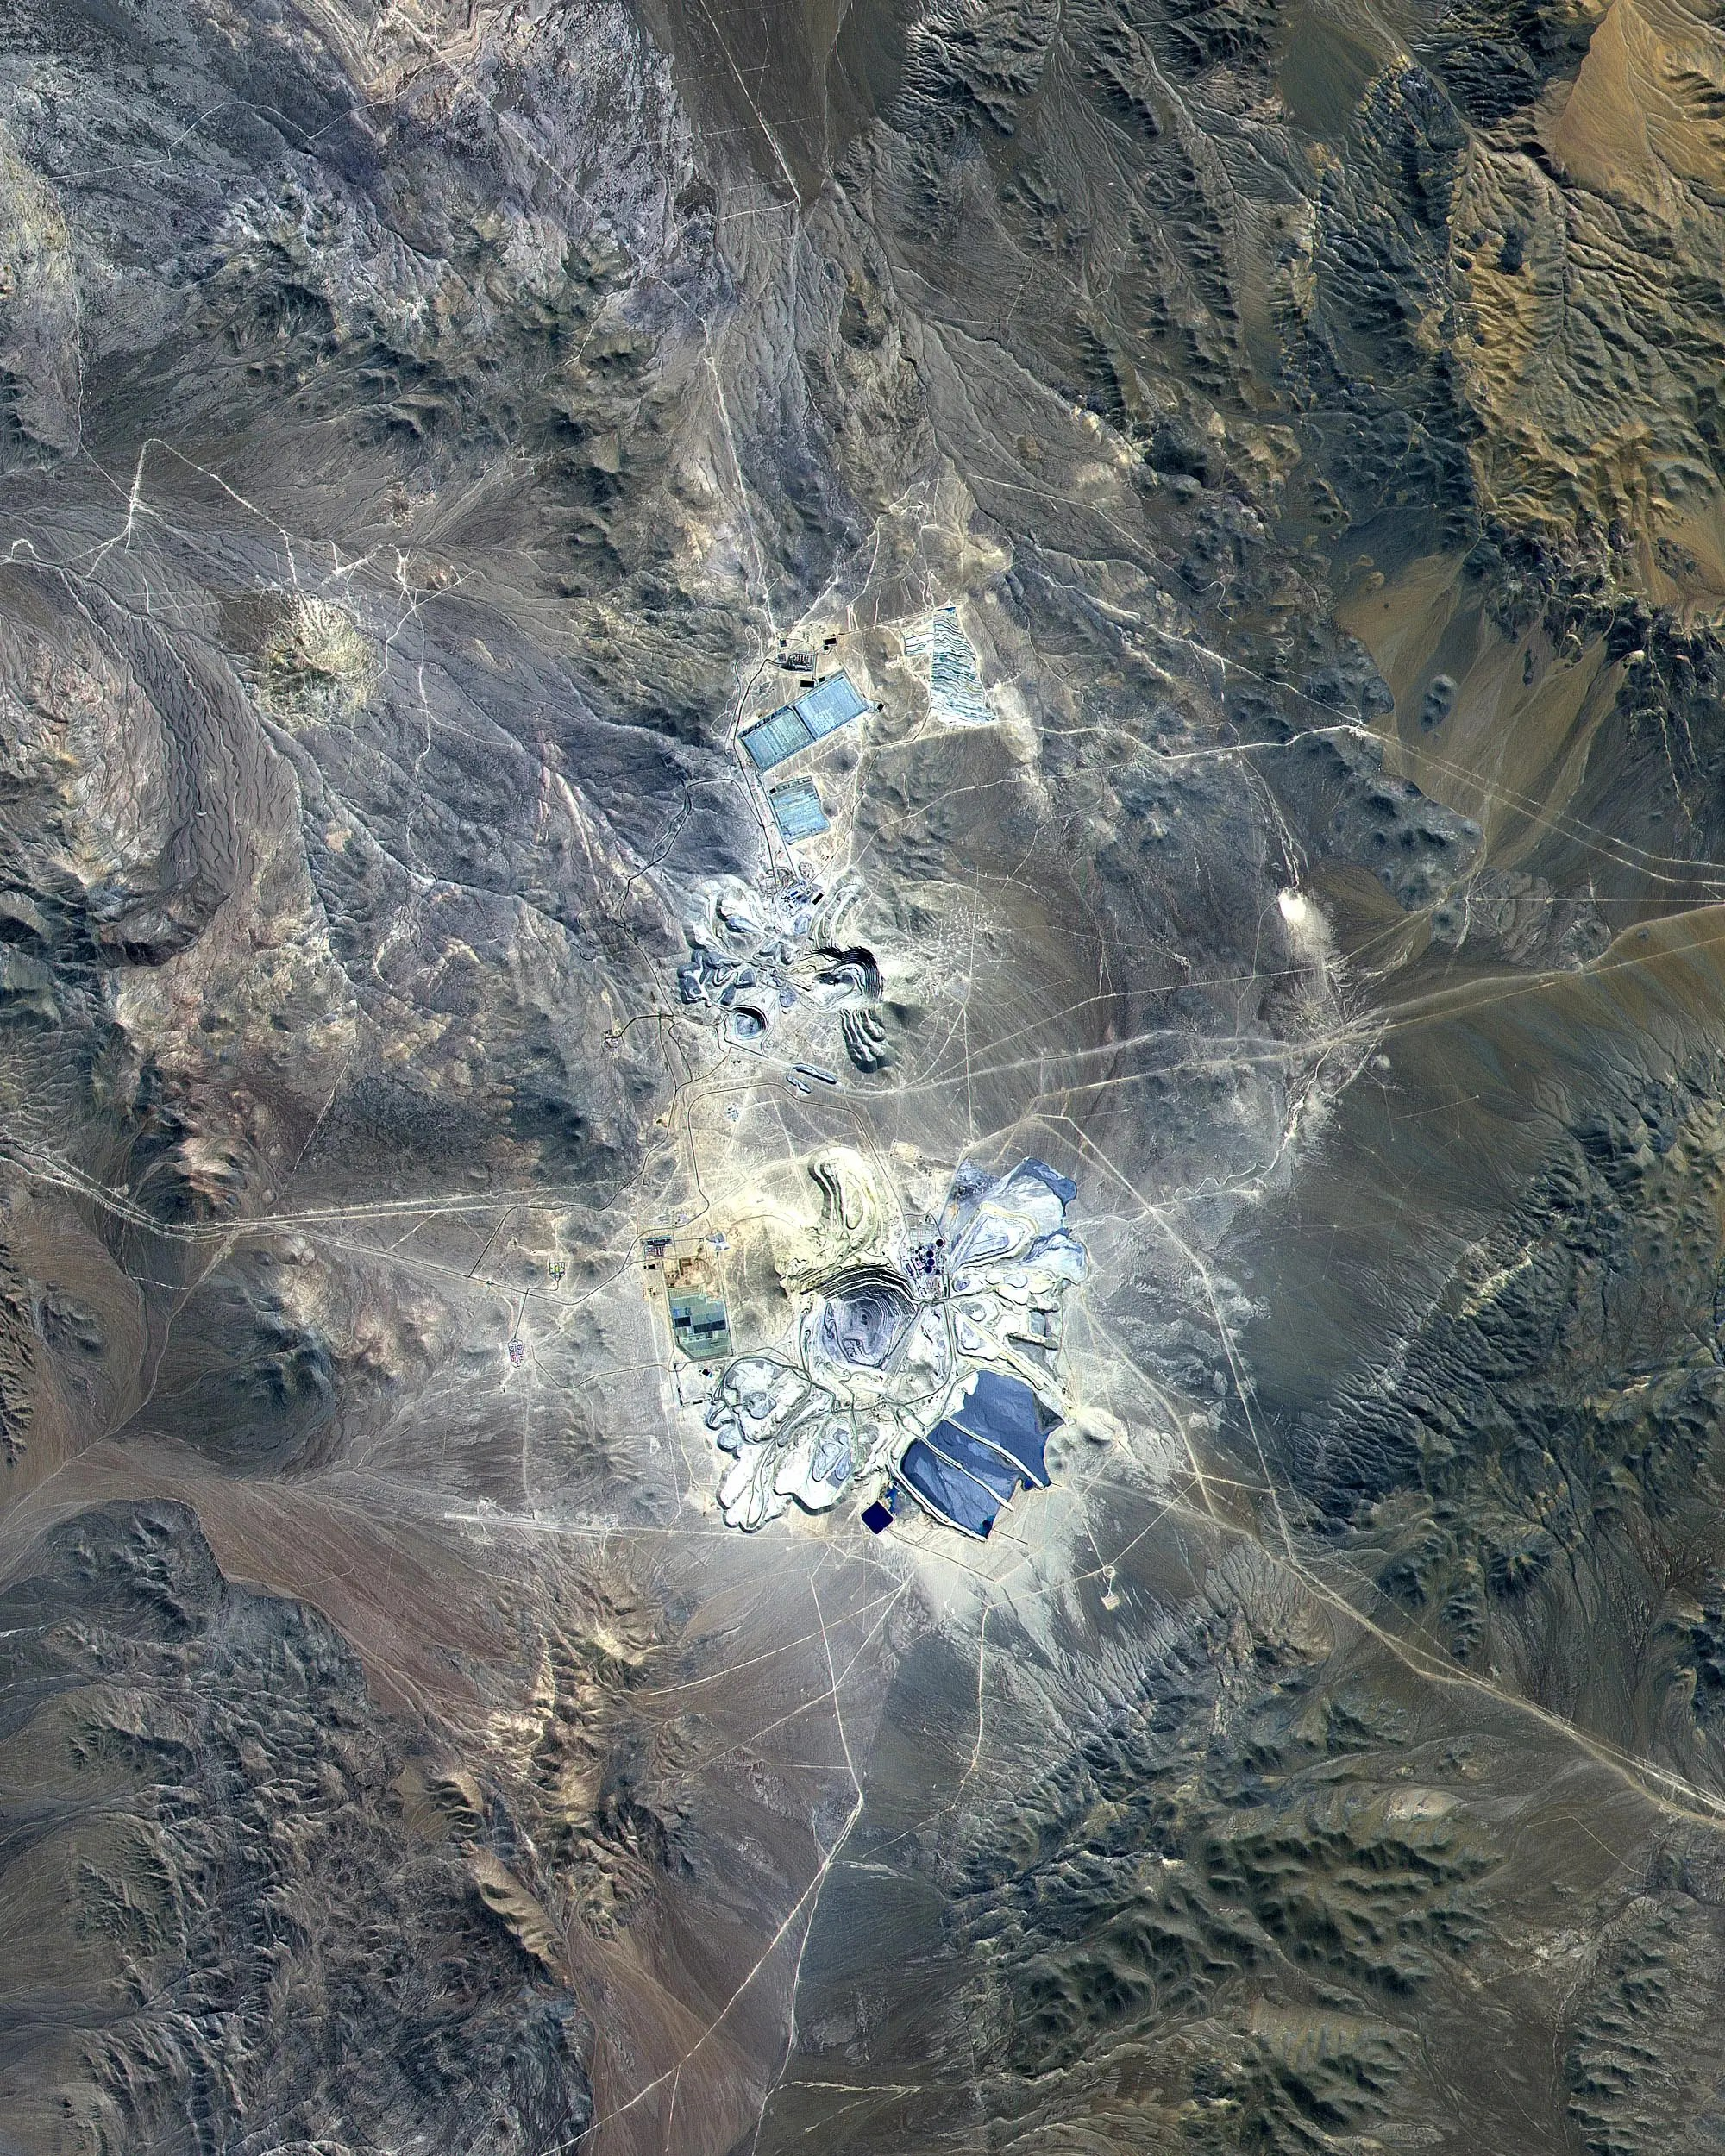 The Escondida mine in Chile's Atacama Desert has transformed the landscape to extract precious metals like gold, silver, and copper.